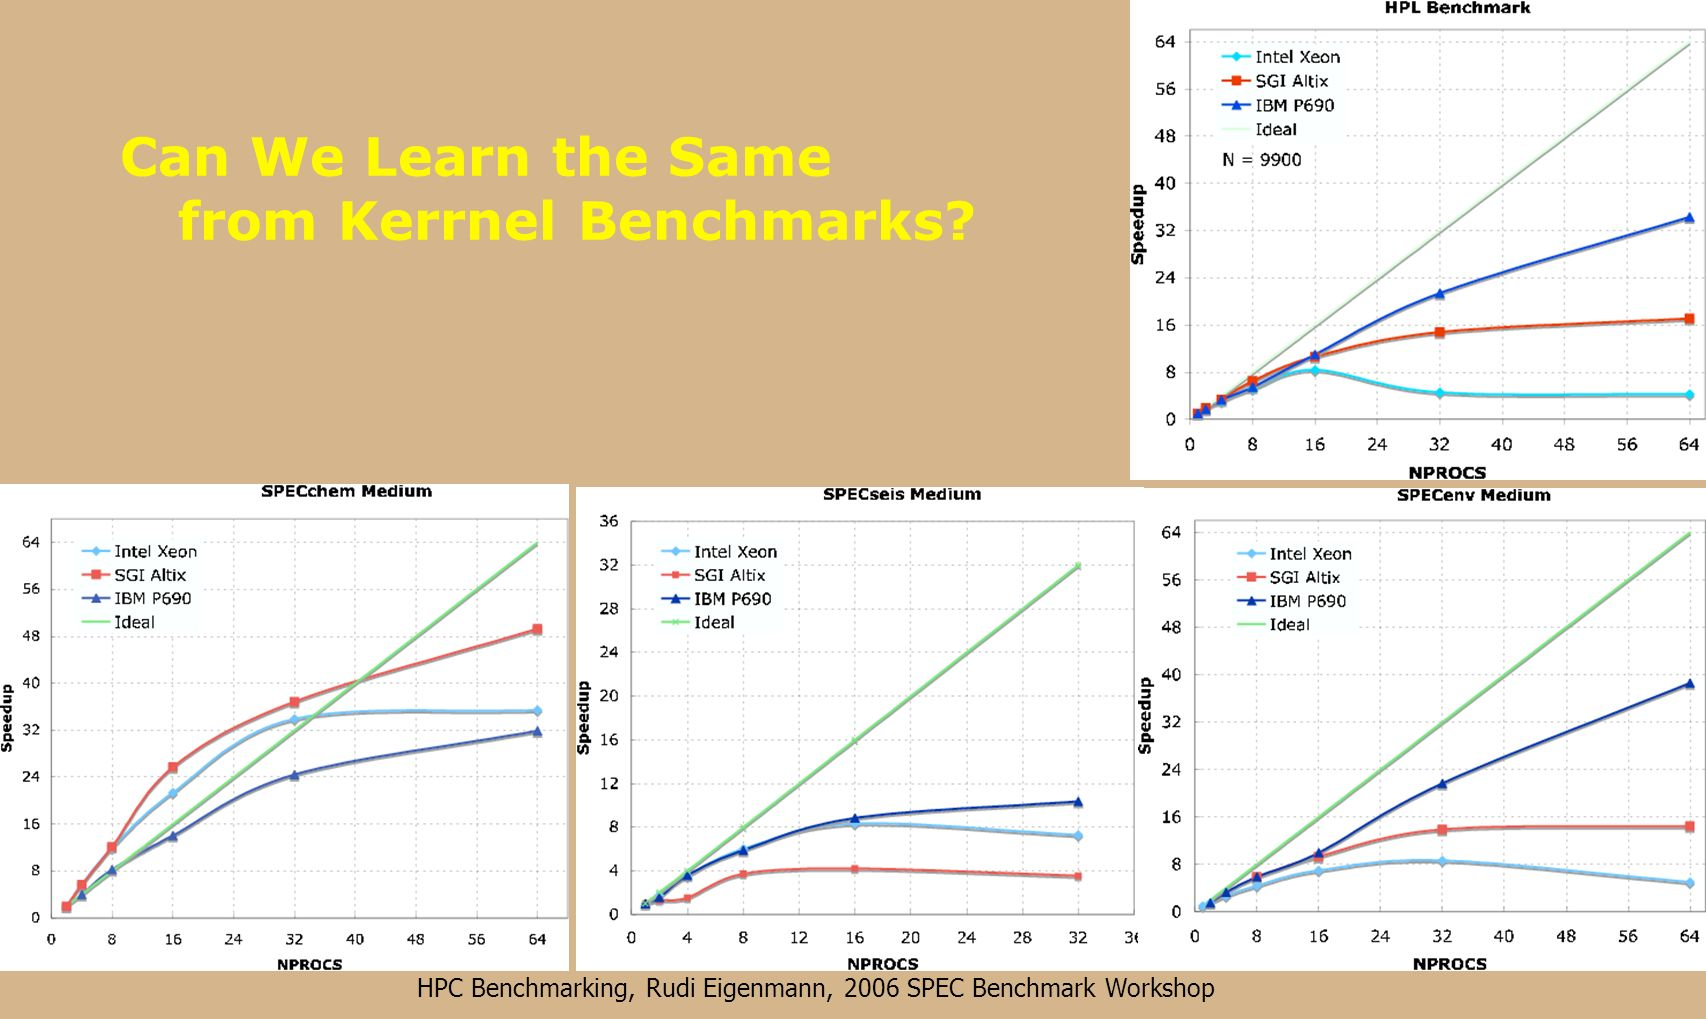 HPC Benchmarking, Rudi Eigenmann, 2006 SPEC Benchmark Workshop Ranklist of Supercomputers based on Realistic Applications (SPEC HPC, medium data set)